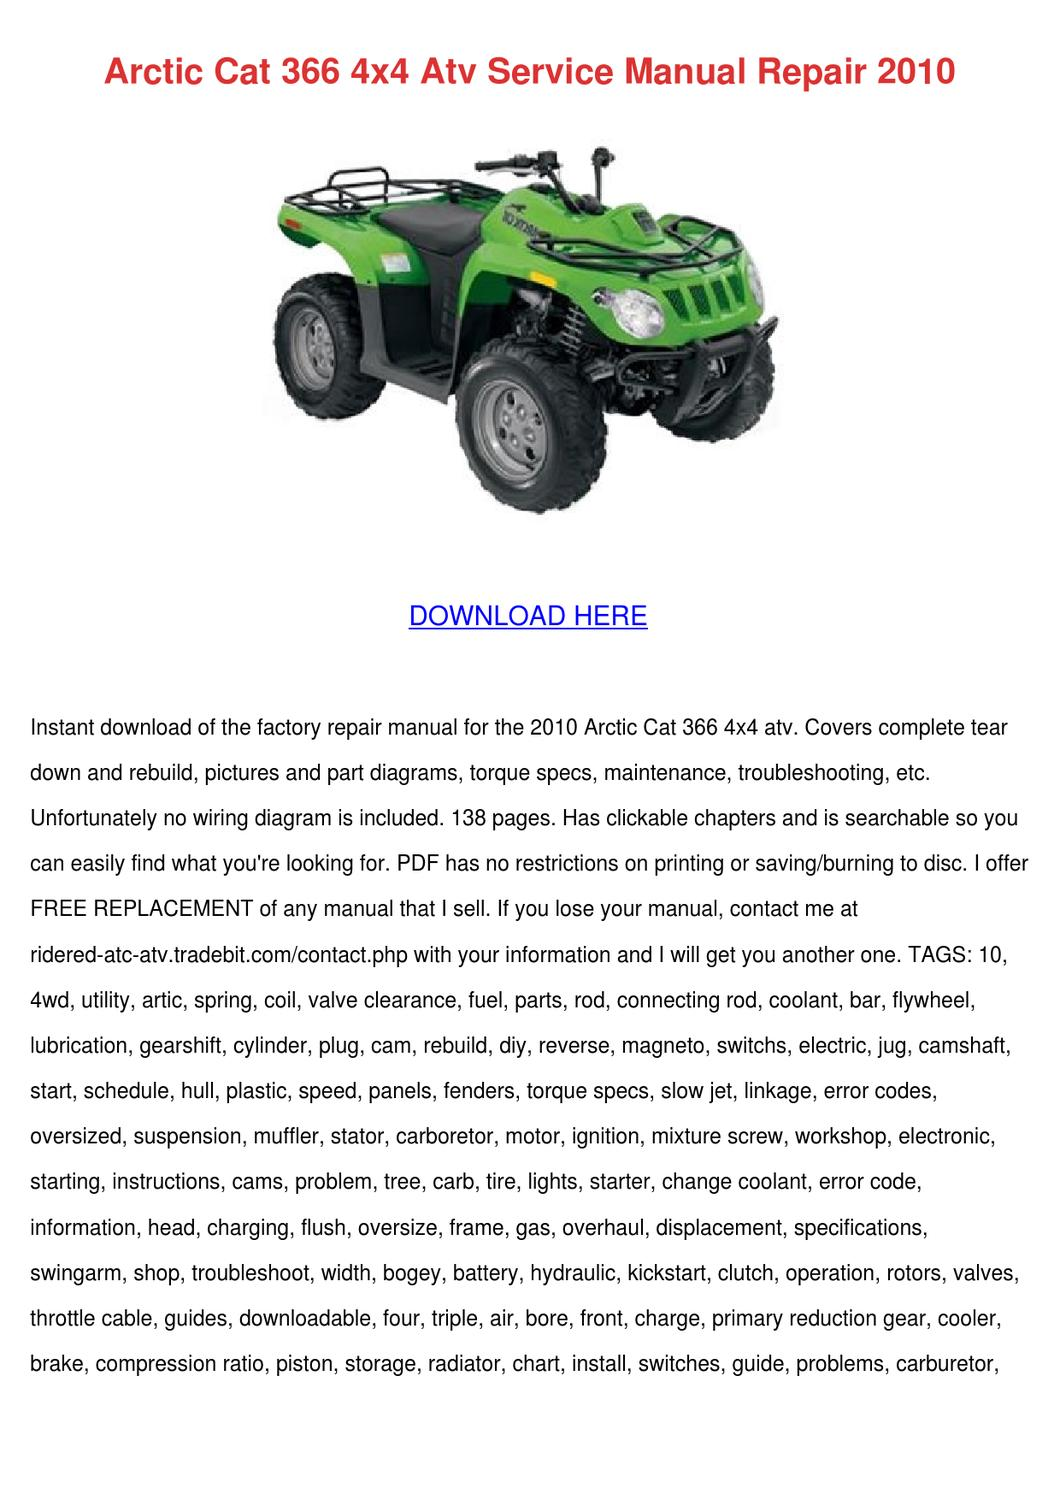 arctic cat 366 4x4 atv service manual repair by elenor. Black Bedroom Furniture Sets. Home Design Ideas